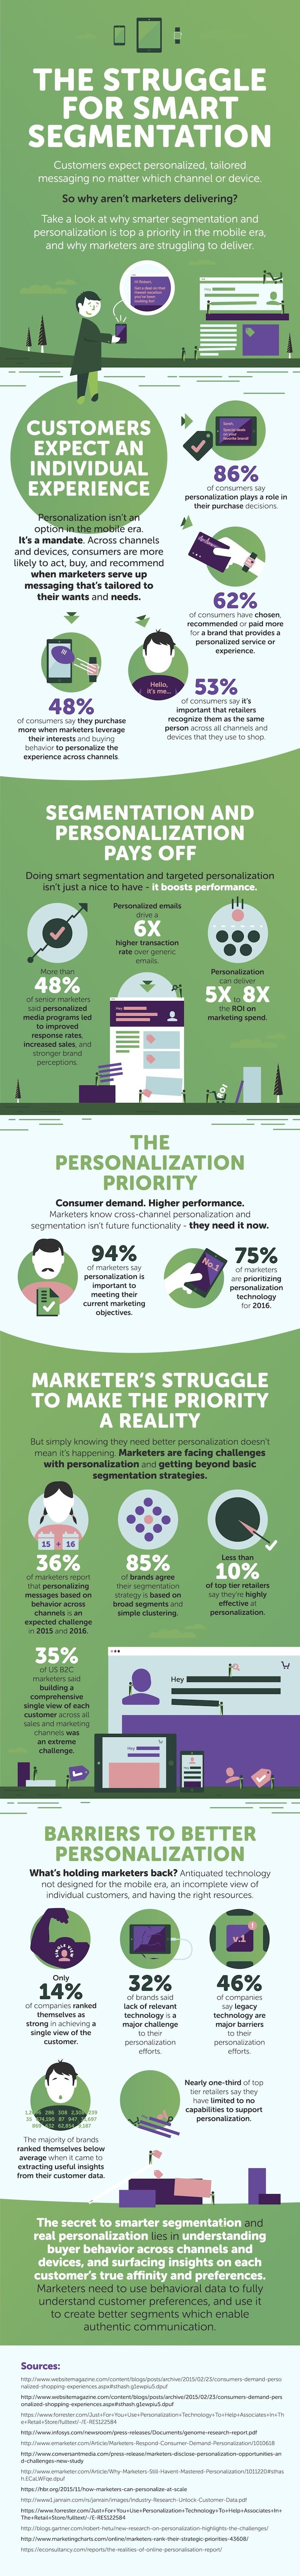 best ideas about market segmentation marketing the struggle for smart segmentation infographic